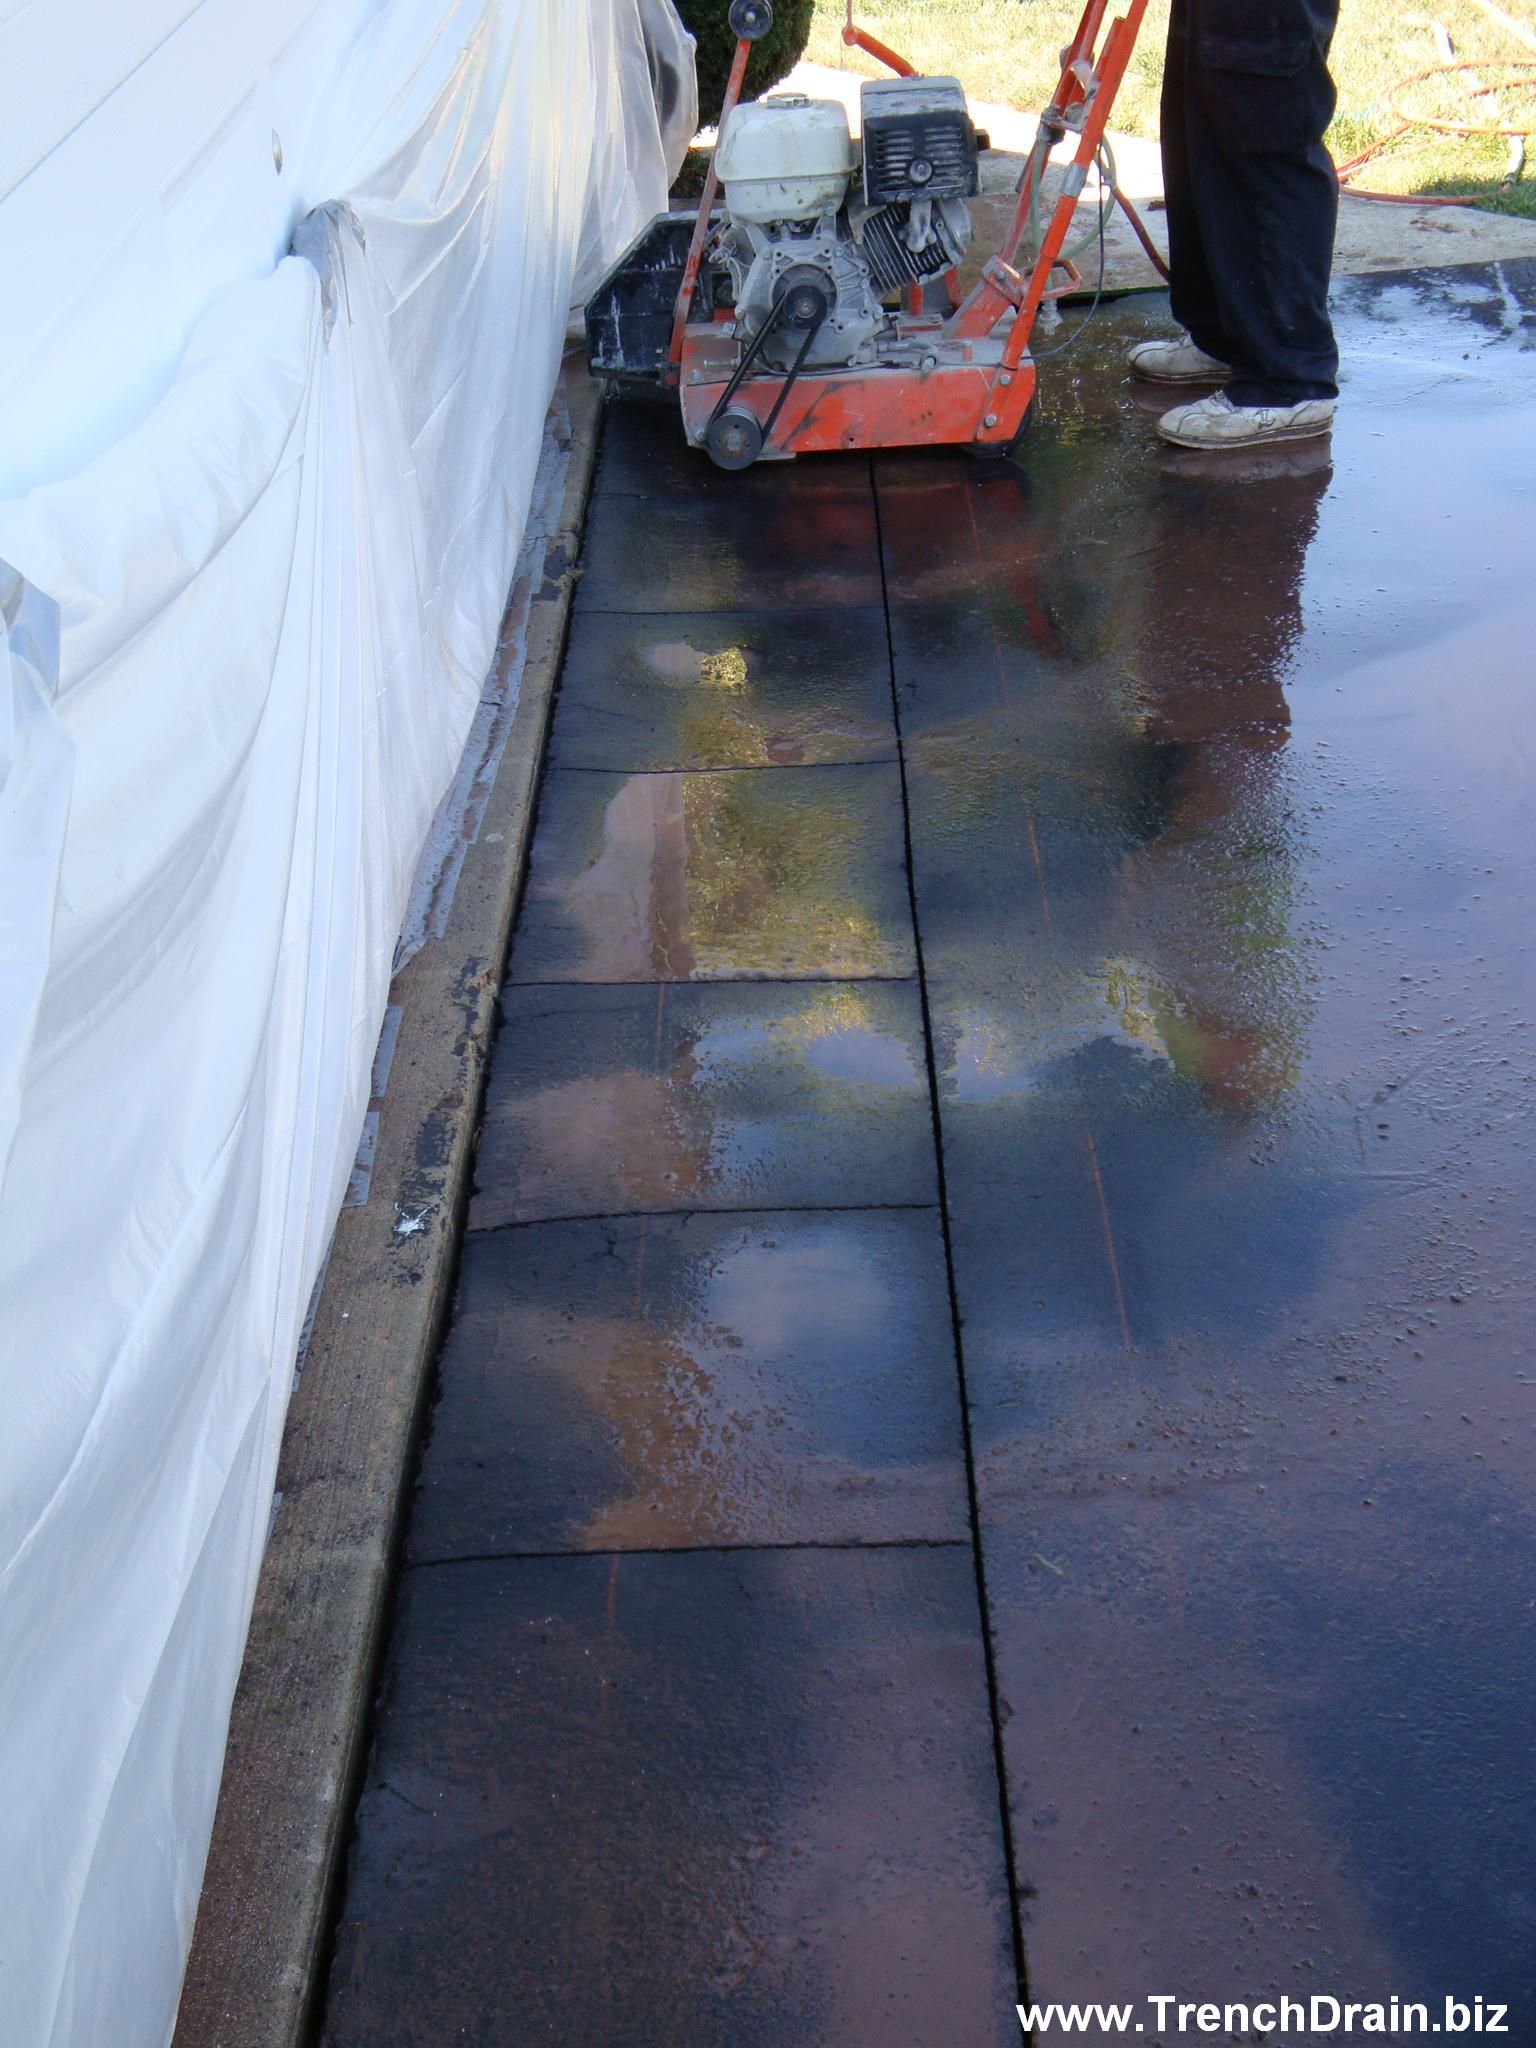 Trench Drain Installation For The Residential Driveway Trenchdrainblog Com Trench Drain Driveway Drain Drainage Grates